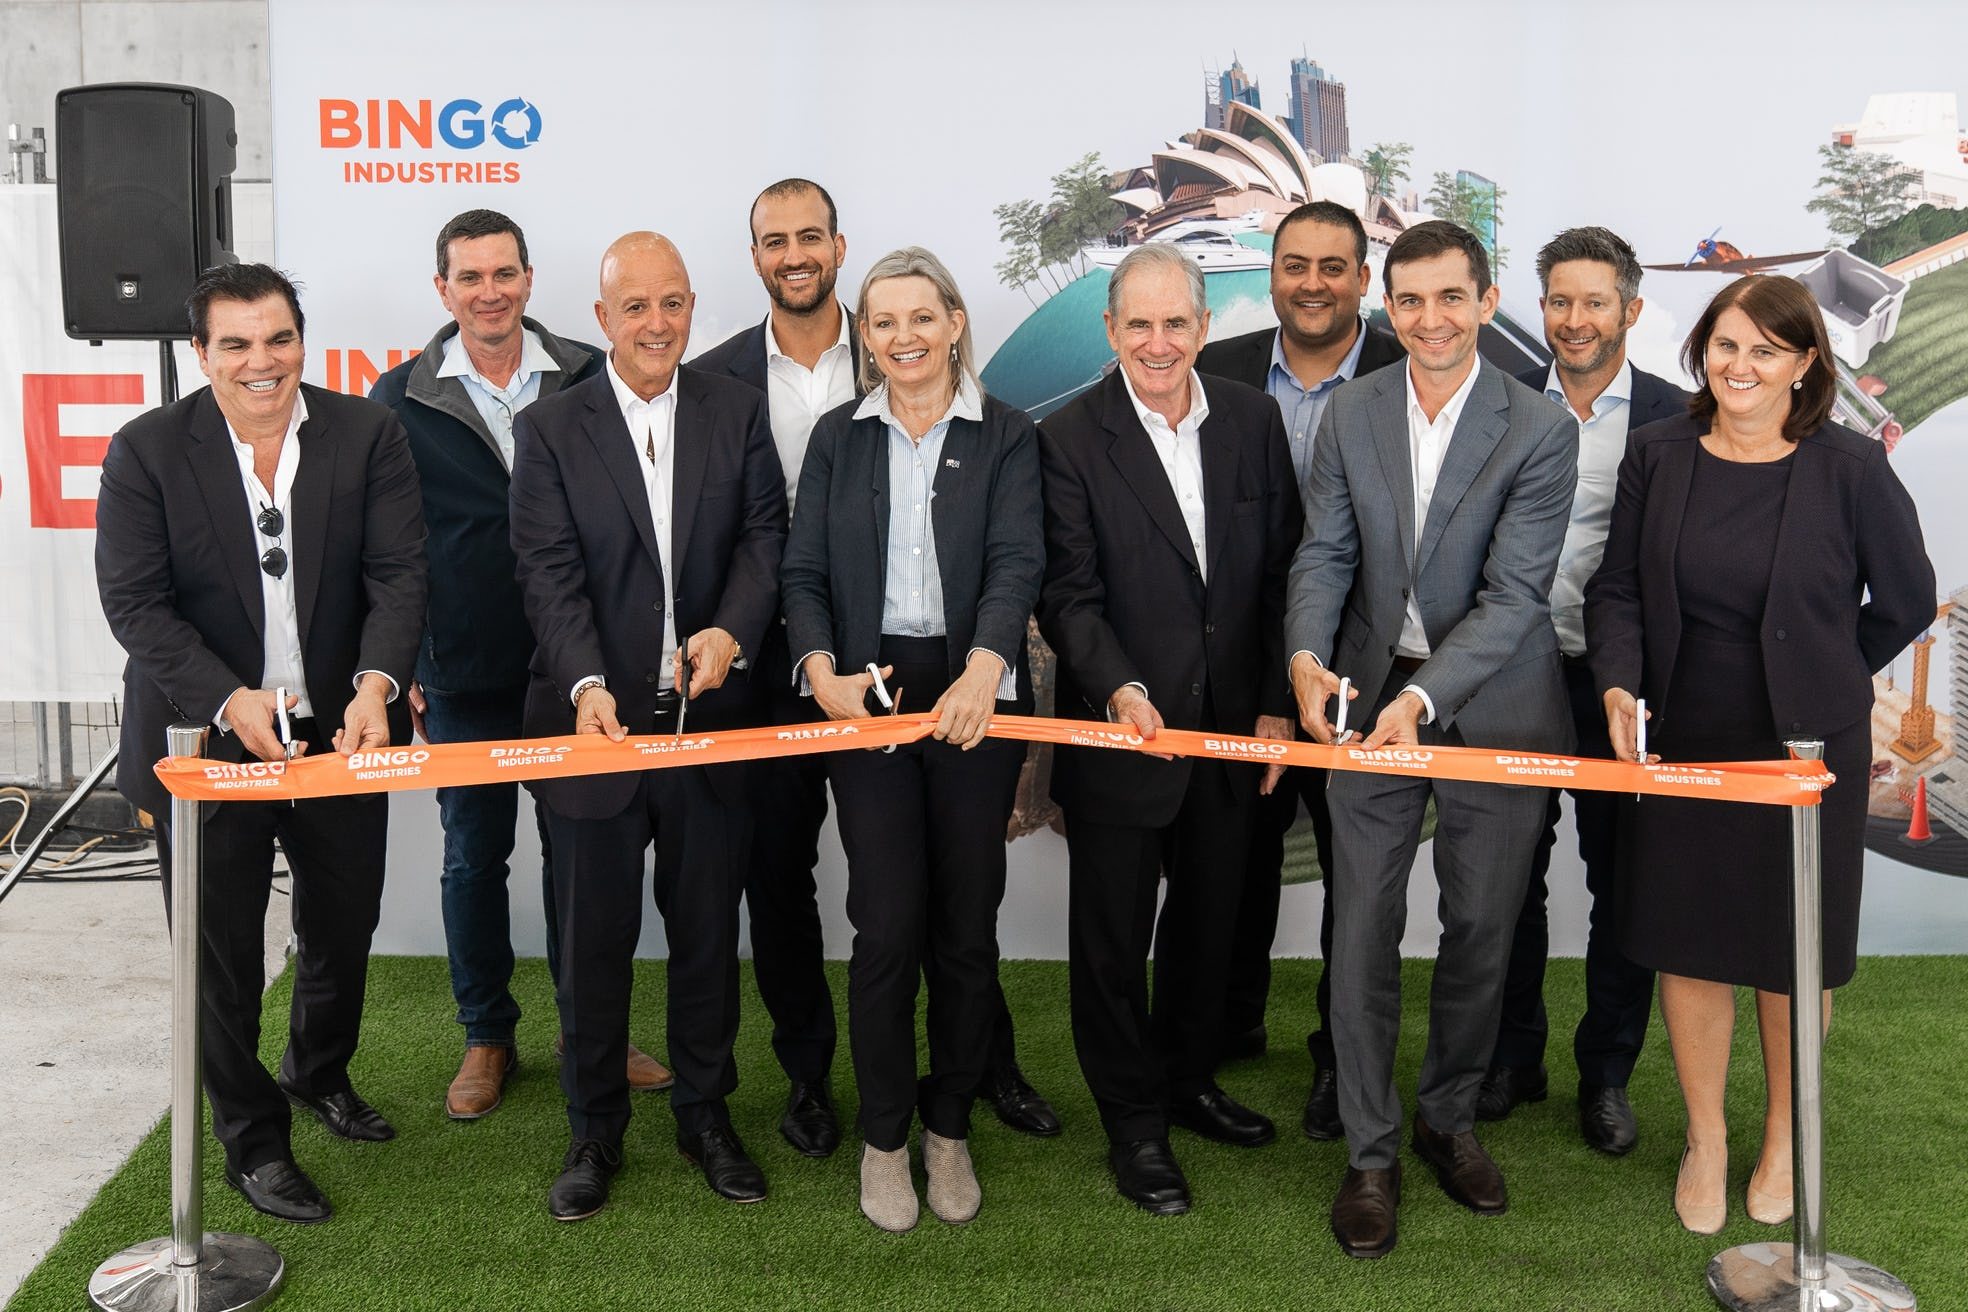 Launch event of BINGO's MPC2 Eastern Creek Recycling Ecology Park